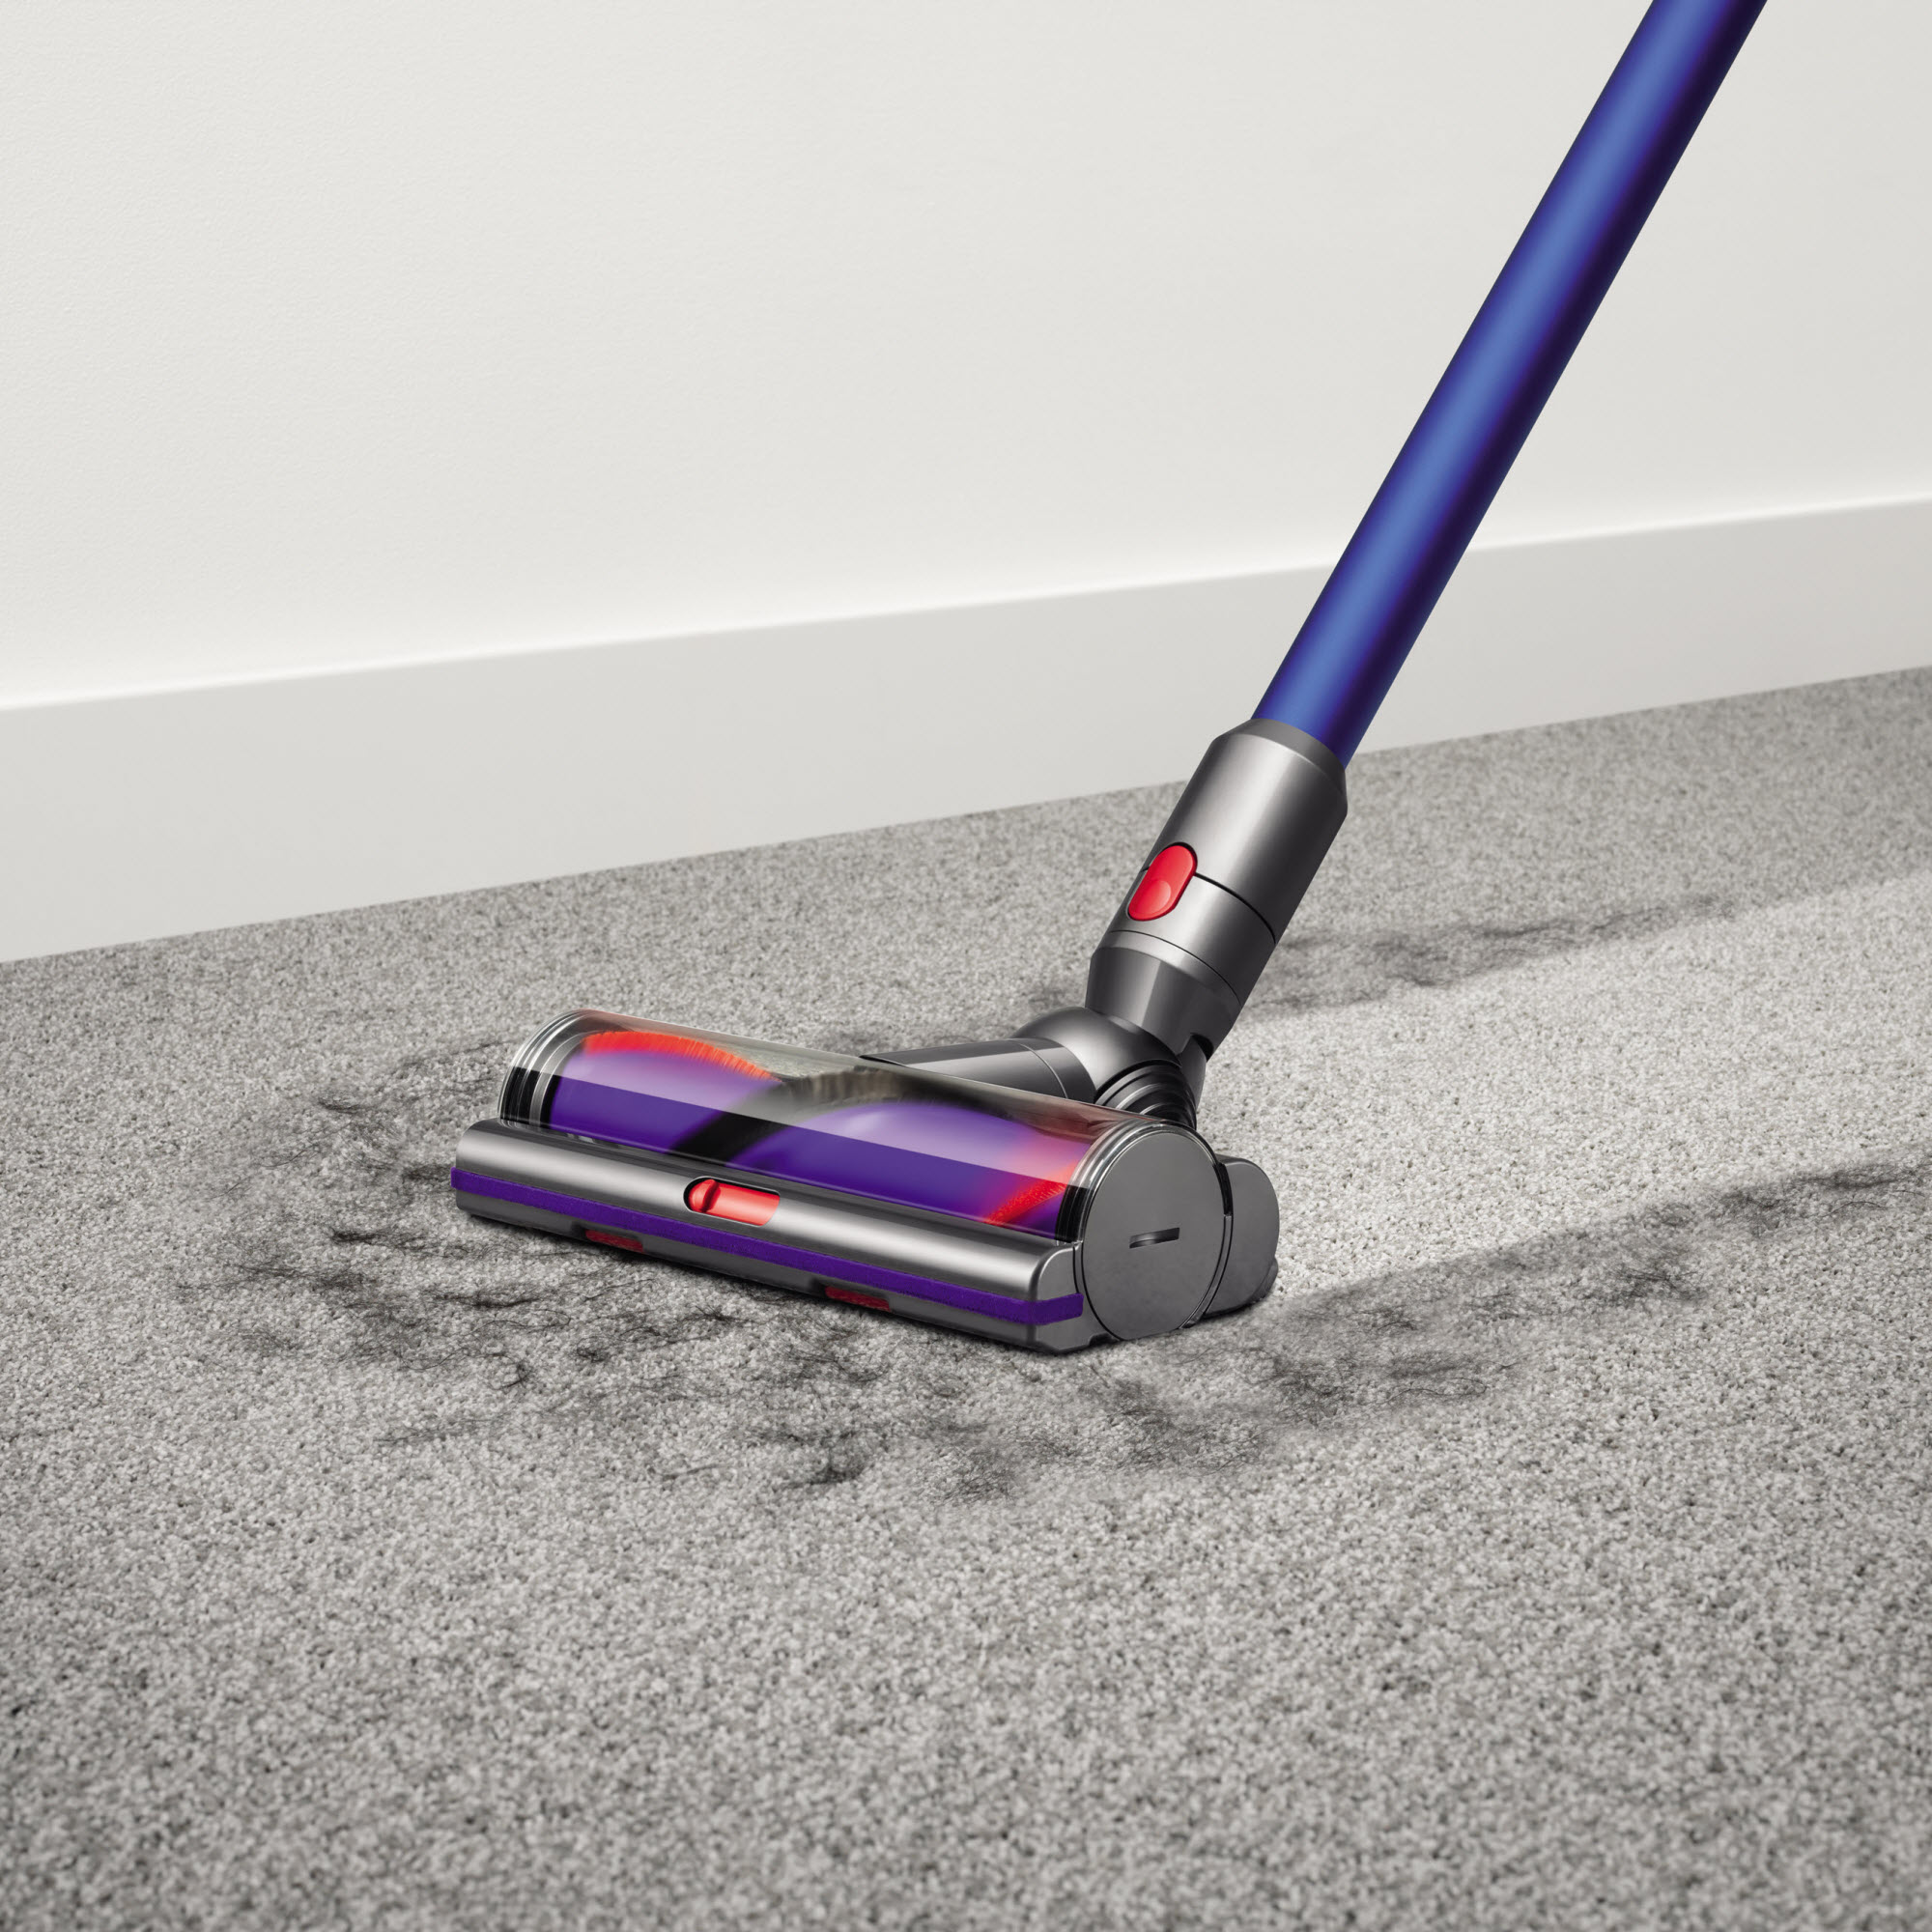 Dyson-V10-Absolute-Cordless-Vacuum-Cleaner-Refurbished thumbnail 12